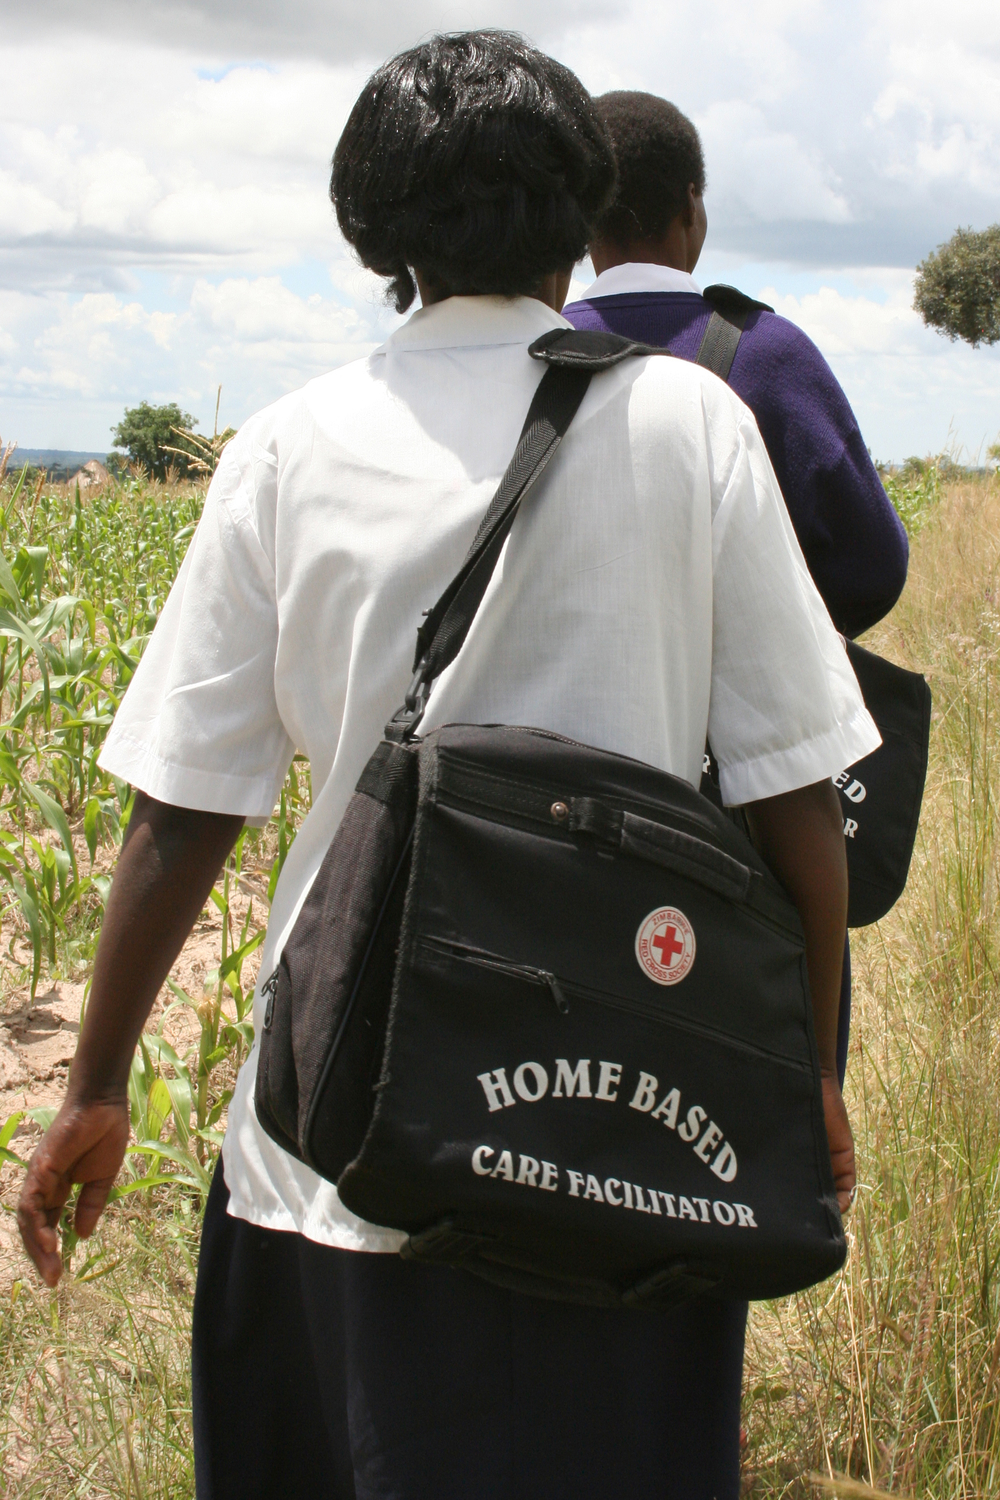 Home based care workers on their rounds in Mashonaland, Zimbabwe. In southern Africa the volume of people infected and affected by HIV and AIDS has overwhelmed public health systems and social services. Community organisations, church groups and nongovern